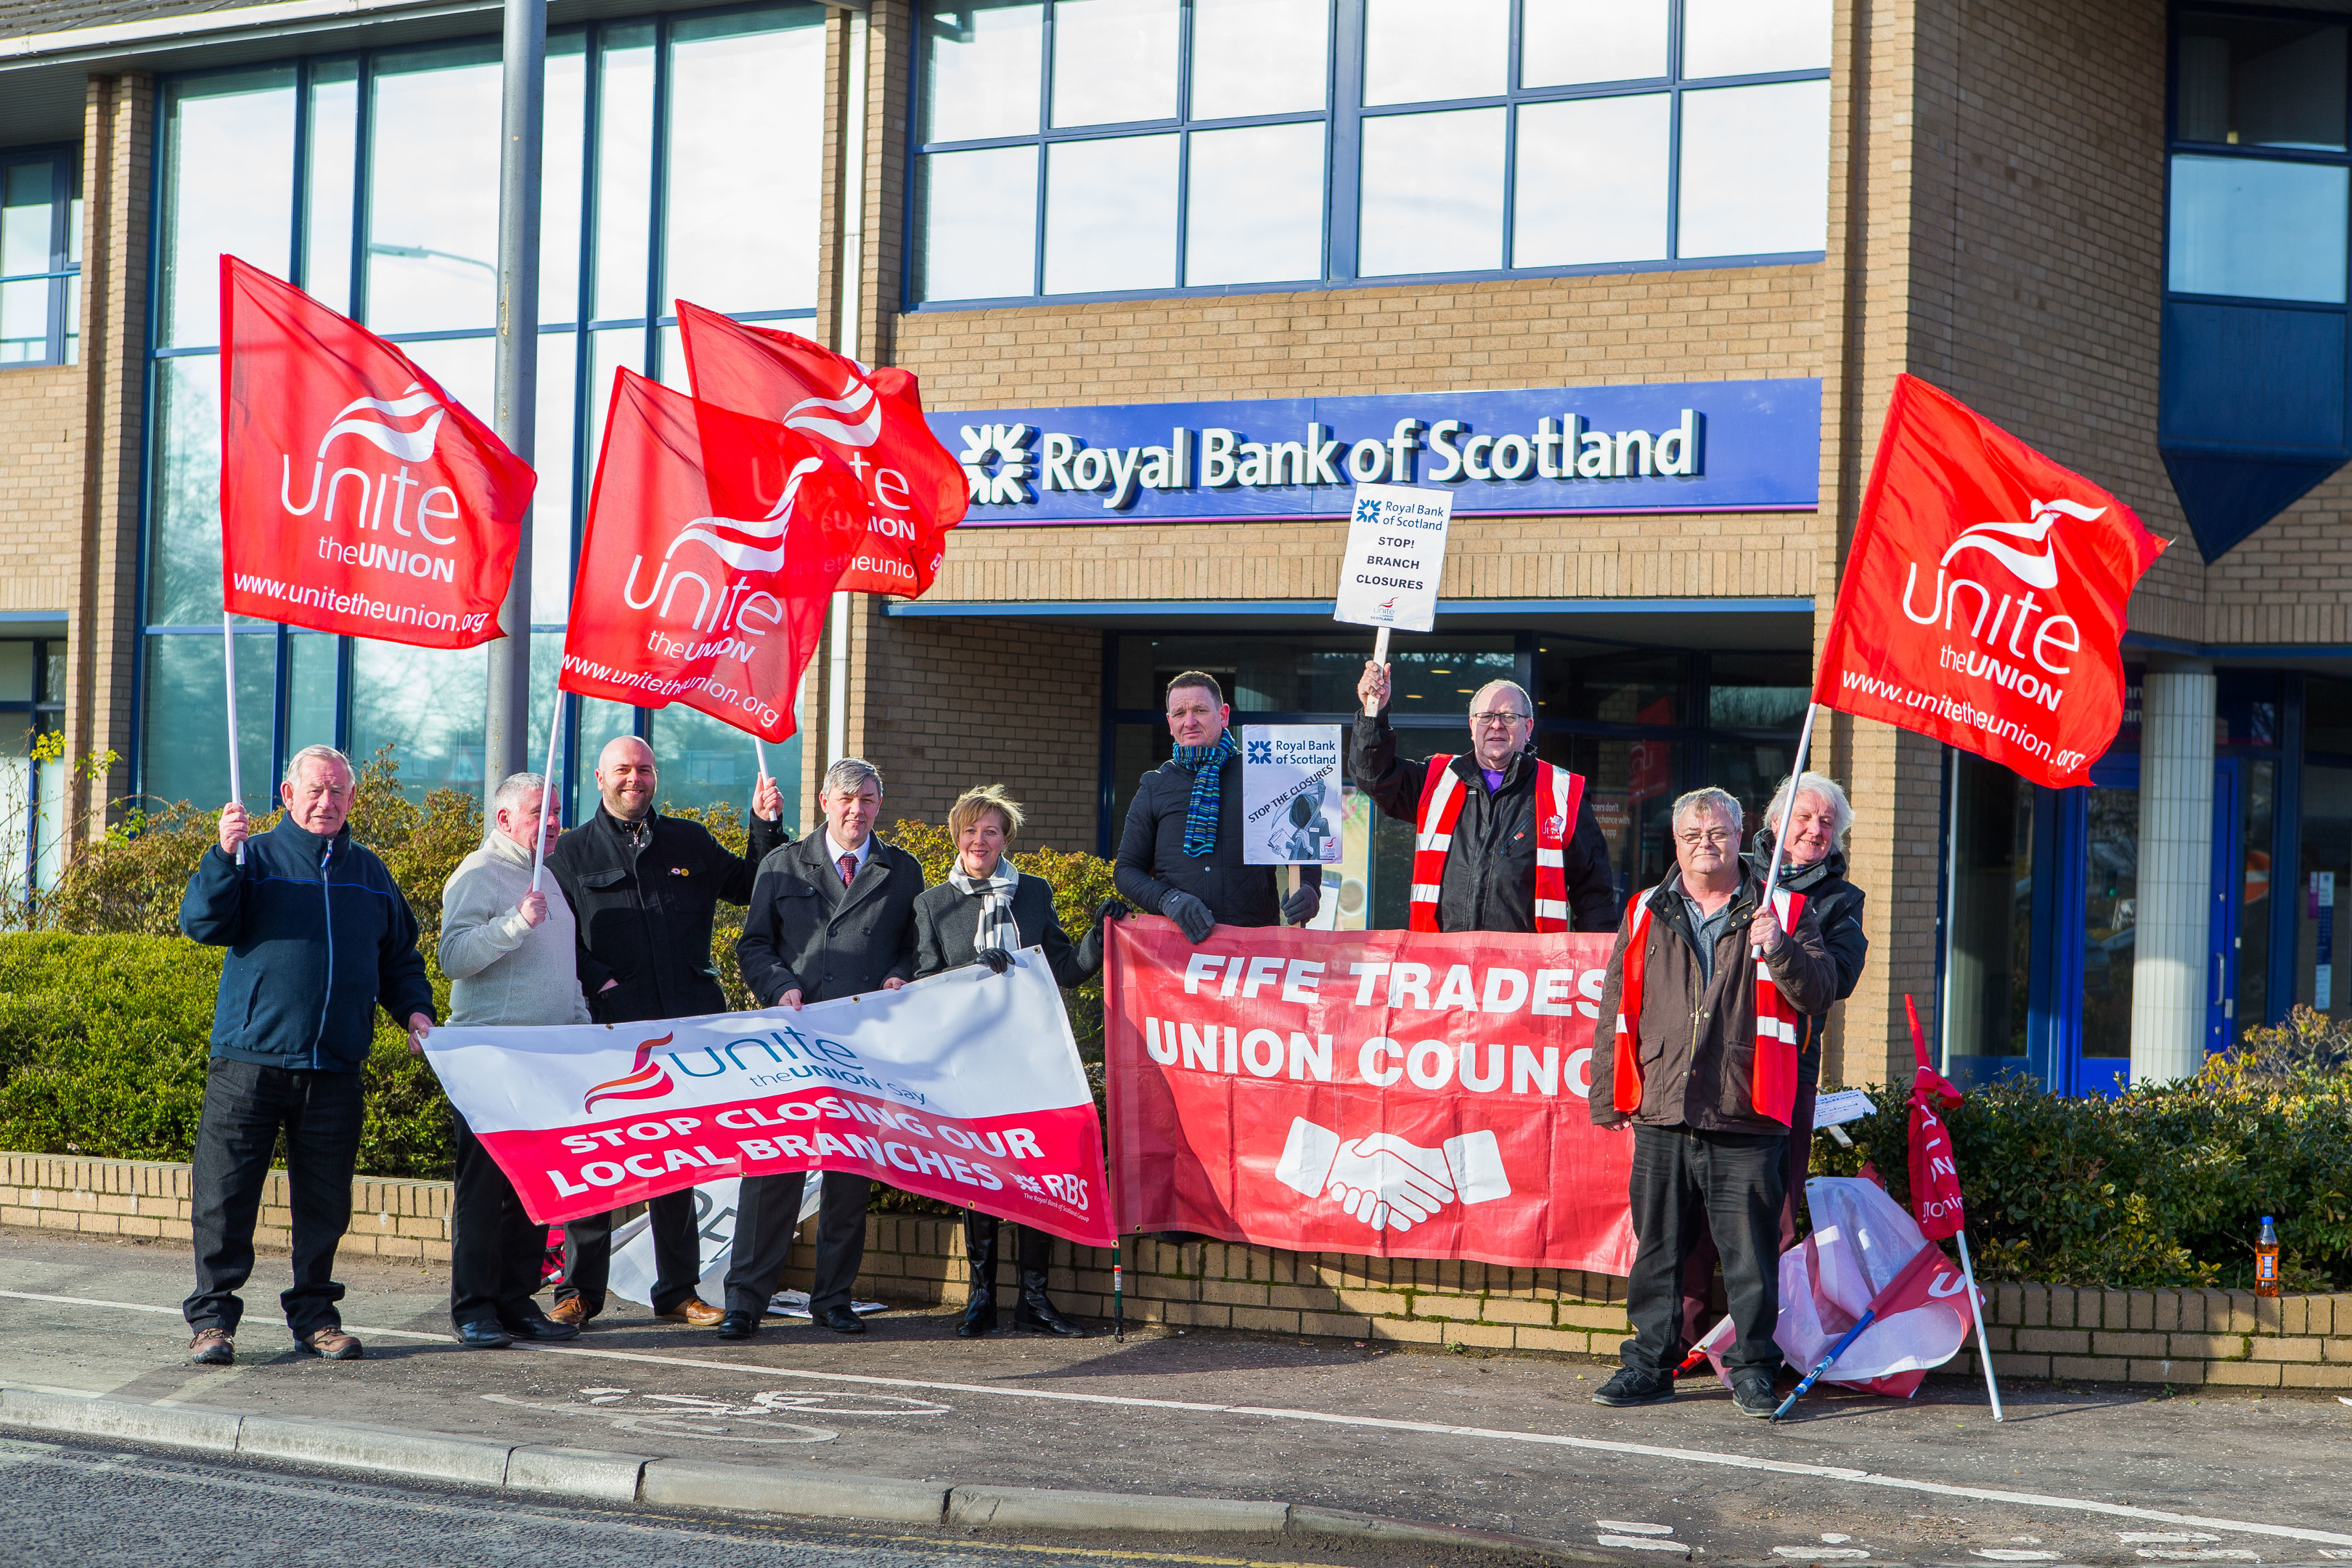 Unite protesting outside RBS in Kirkcaldy over closures of local branches.